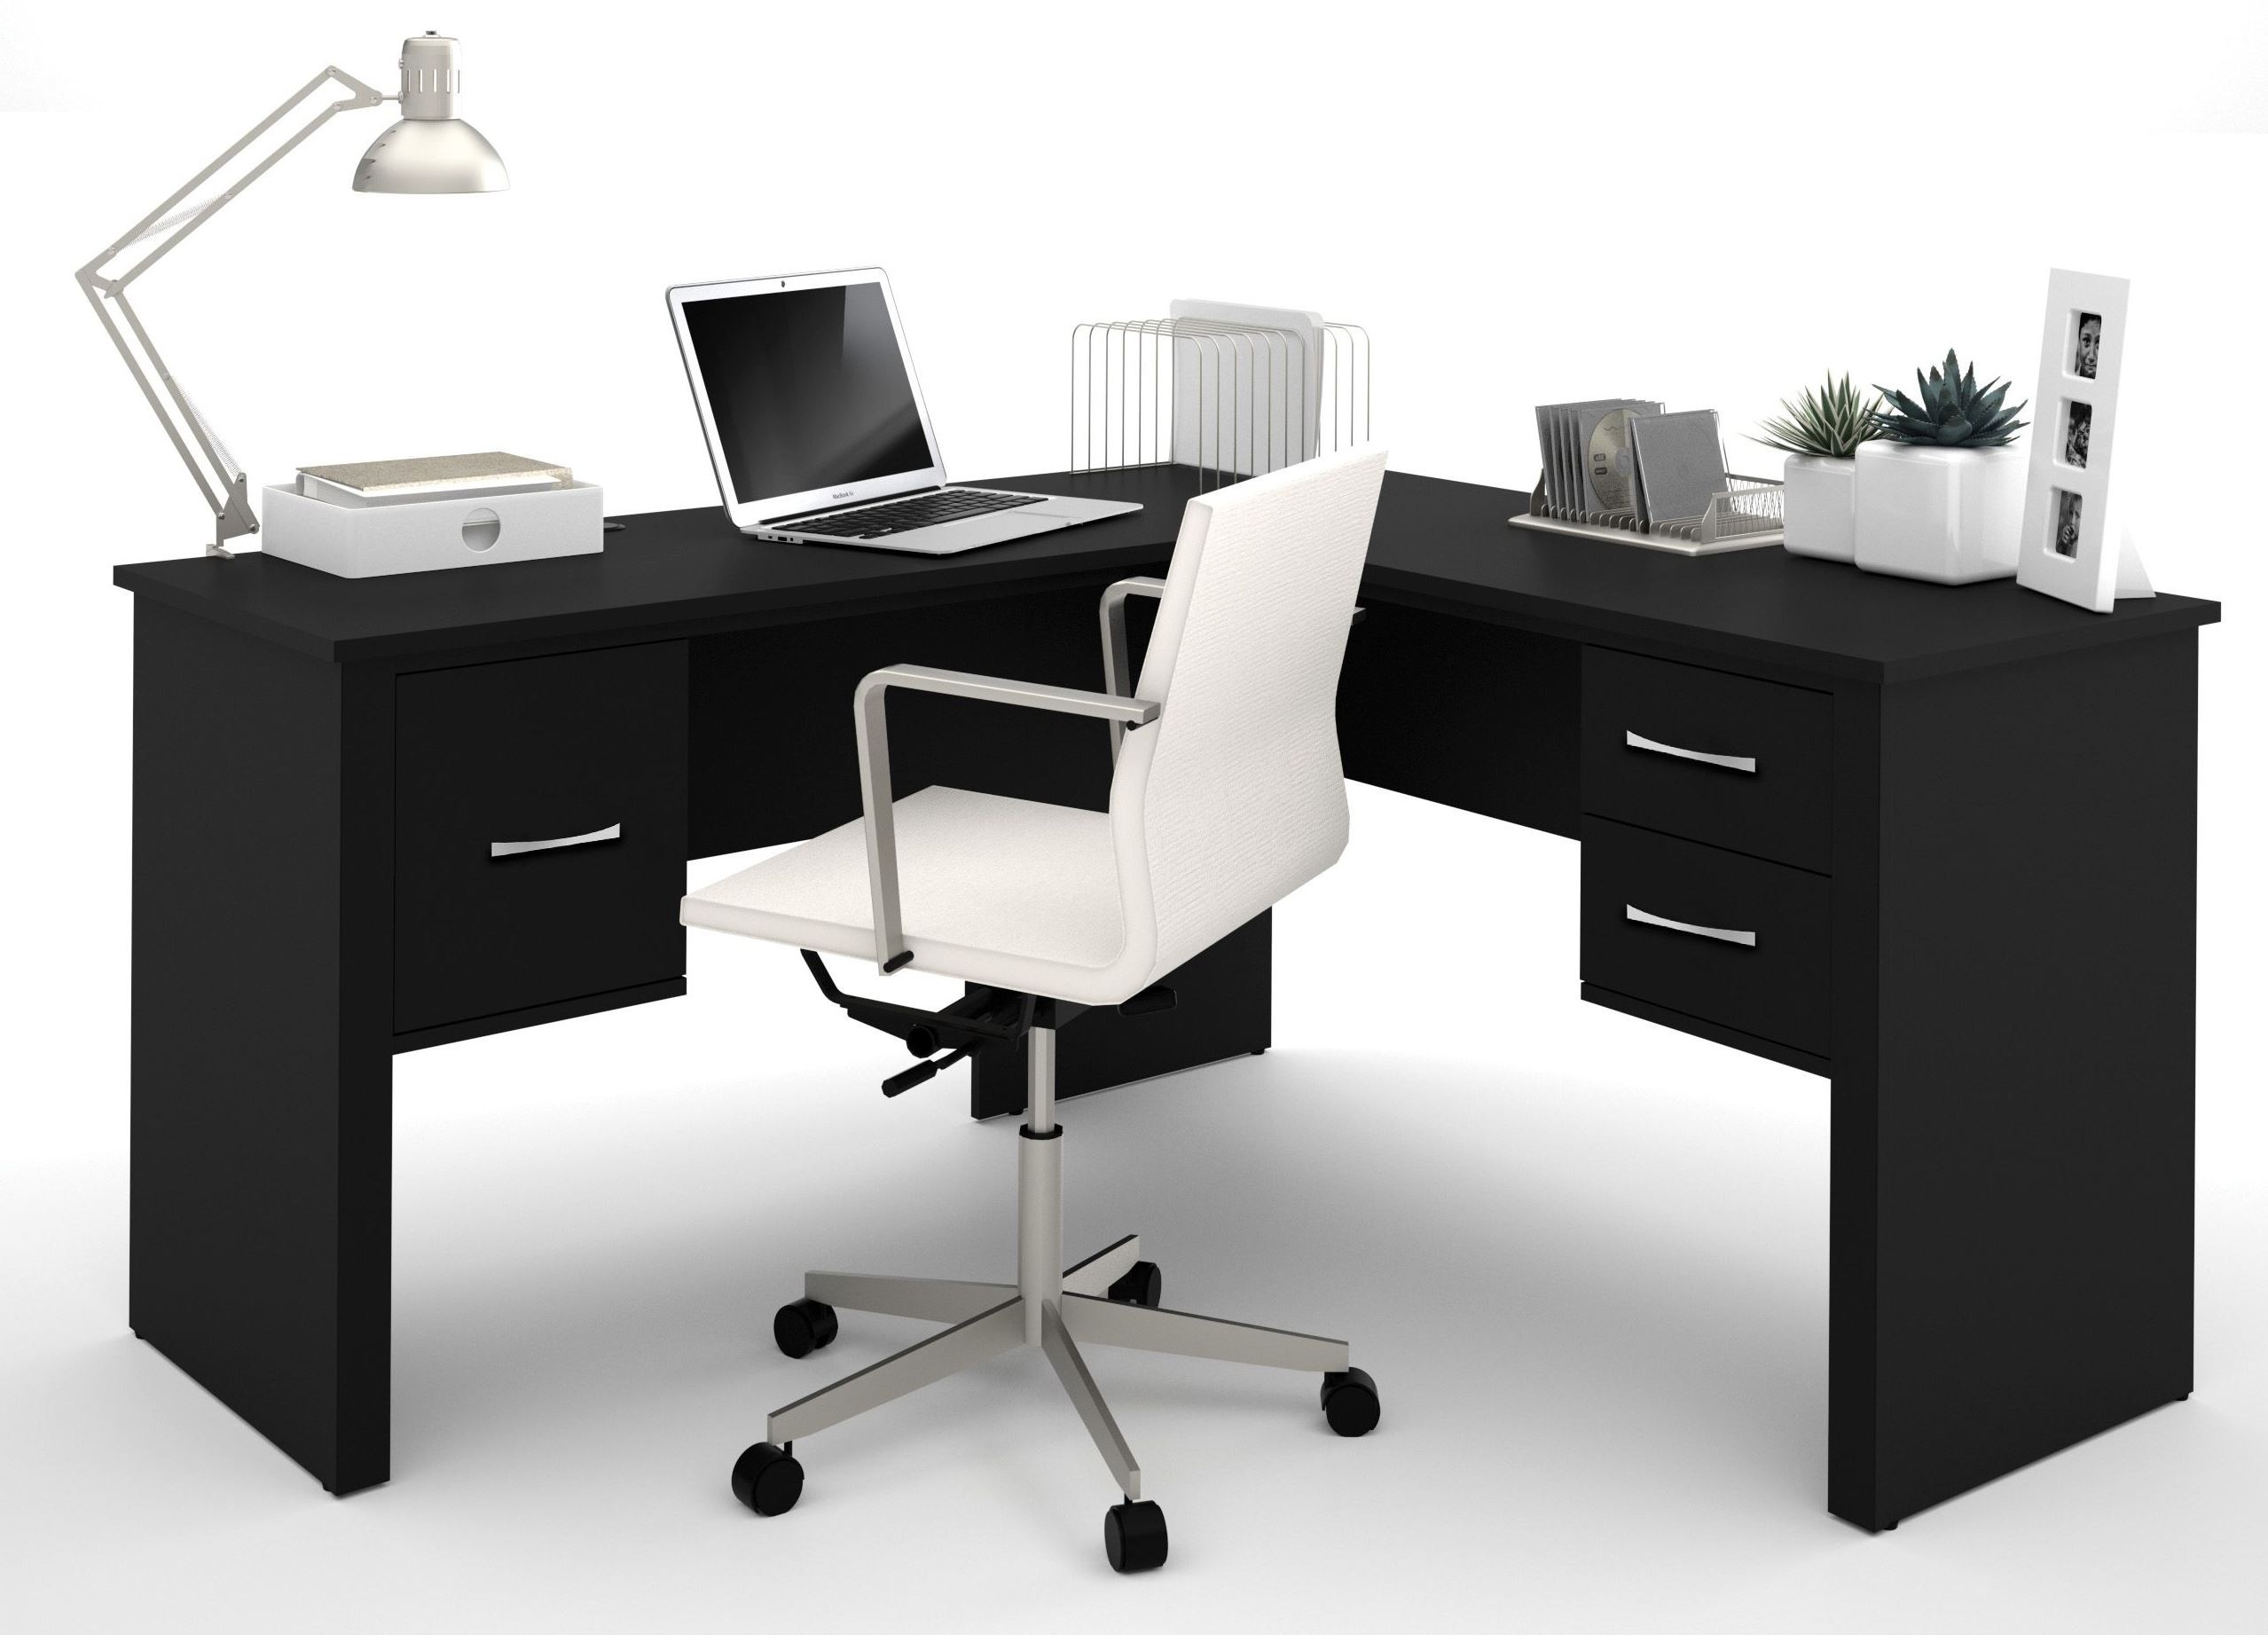 Somerville Black L Shaped Desk From Bestar 45421 1118